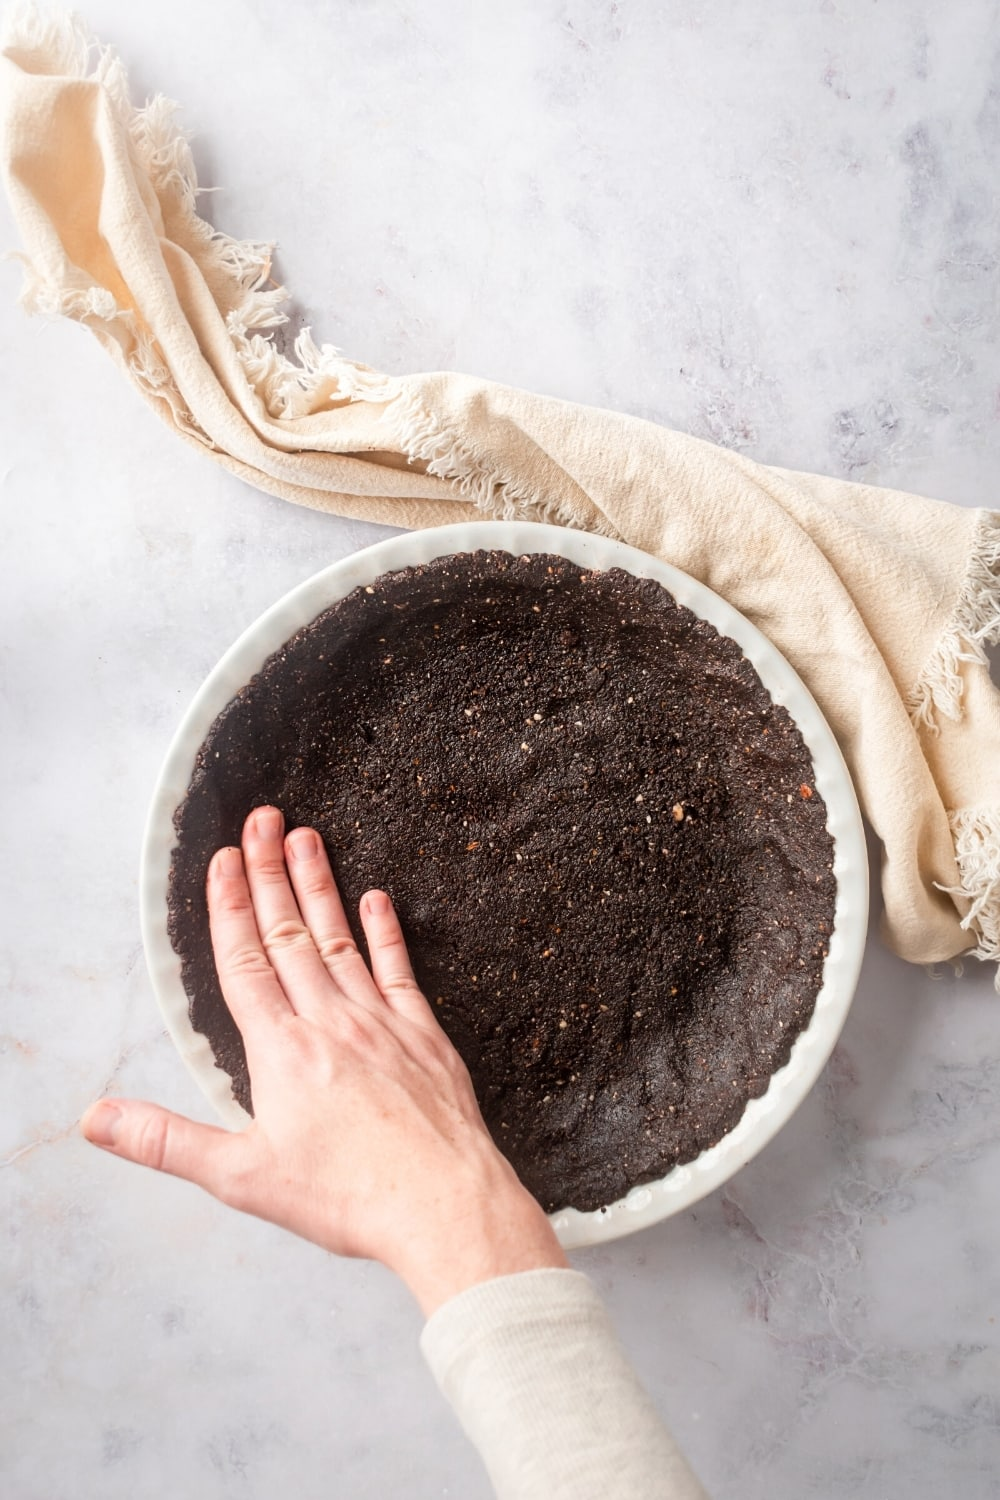 A white pie dish with a chocolate almond flour pie crust formed in it. There is a hand pushing the left side of the piecrust against the dish.